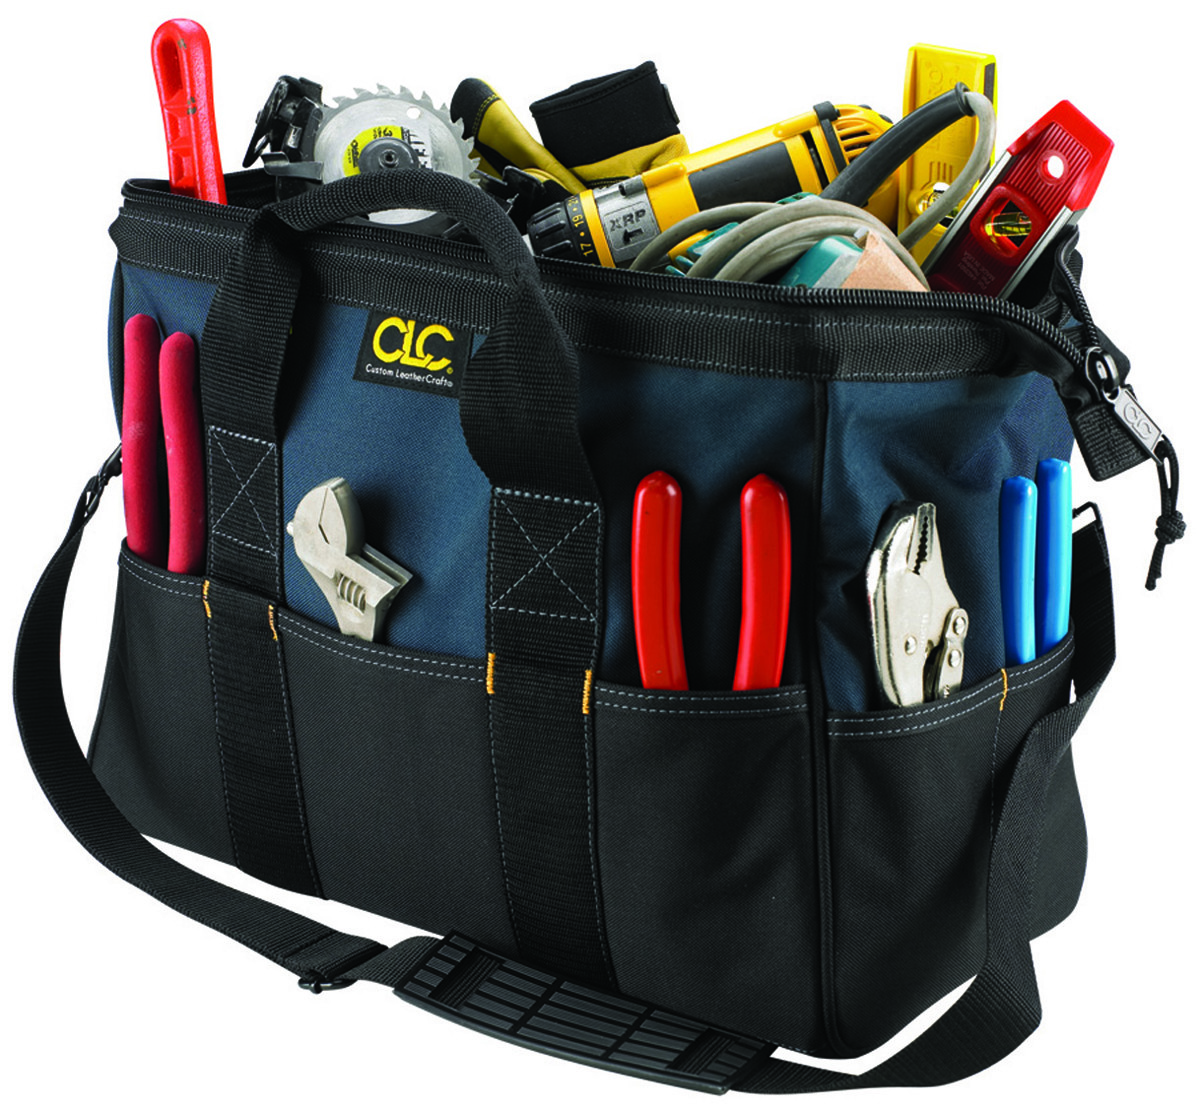 8c7589b7689 Hand Tools Tool Boxes, Bags, Holders & Sets Compartmented Tool Bags  Closeable Top